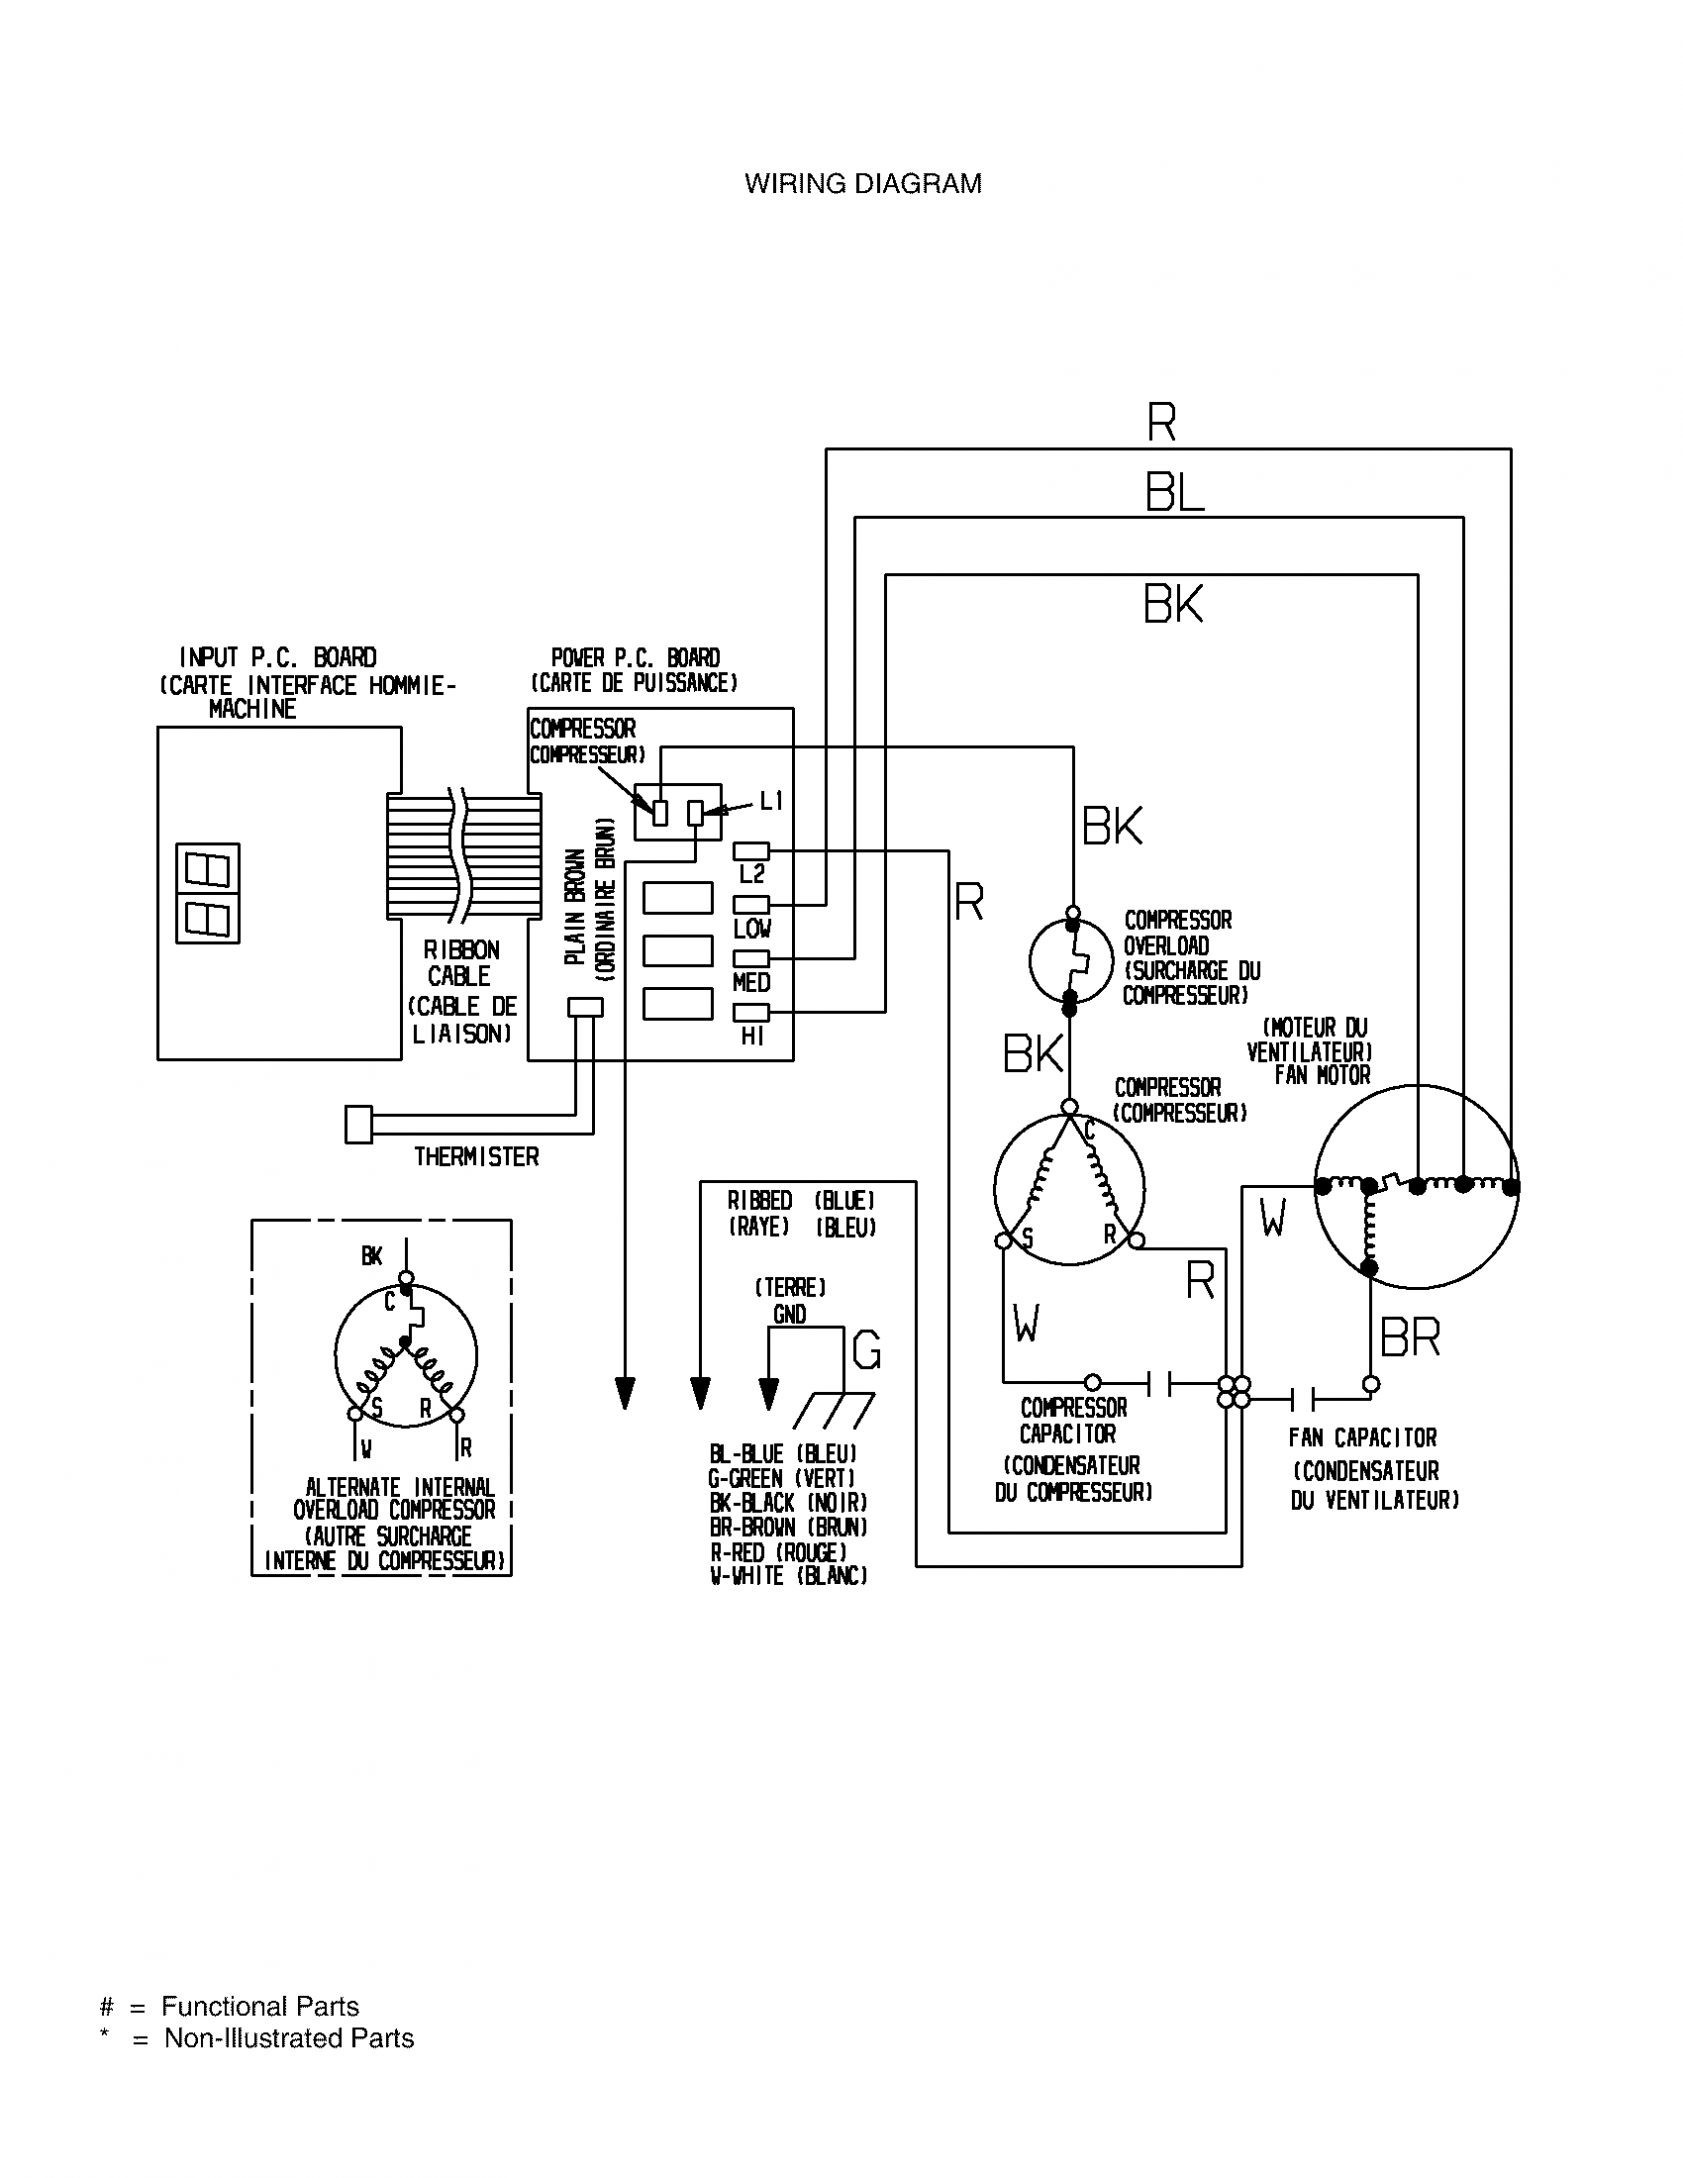 coleman rv air conditioner wiring diagram Download-Tower Ac Wiring Diagram Inspirationa Coleman Rv Air Conditioner Wiring Diagram Wiring 12-q